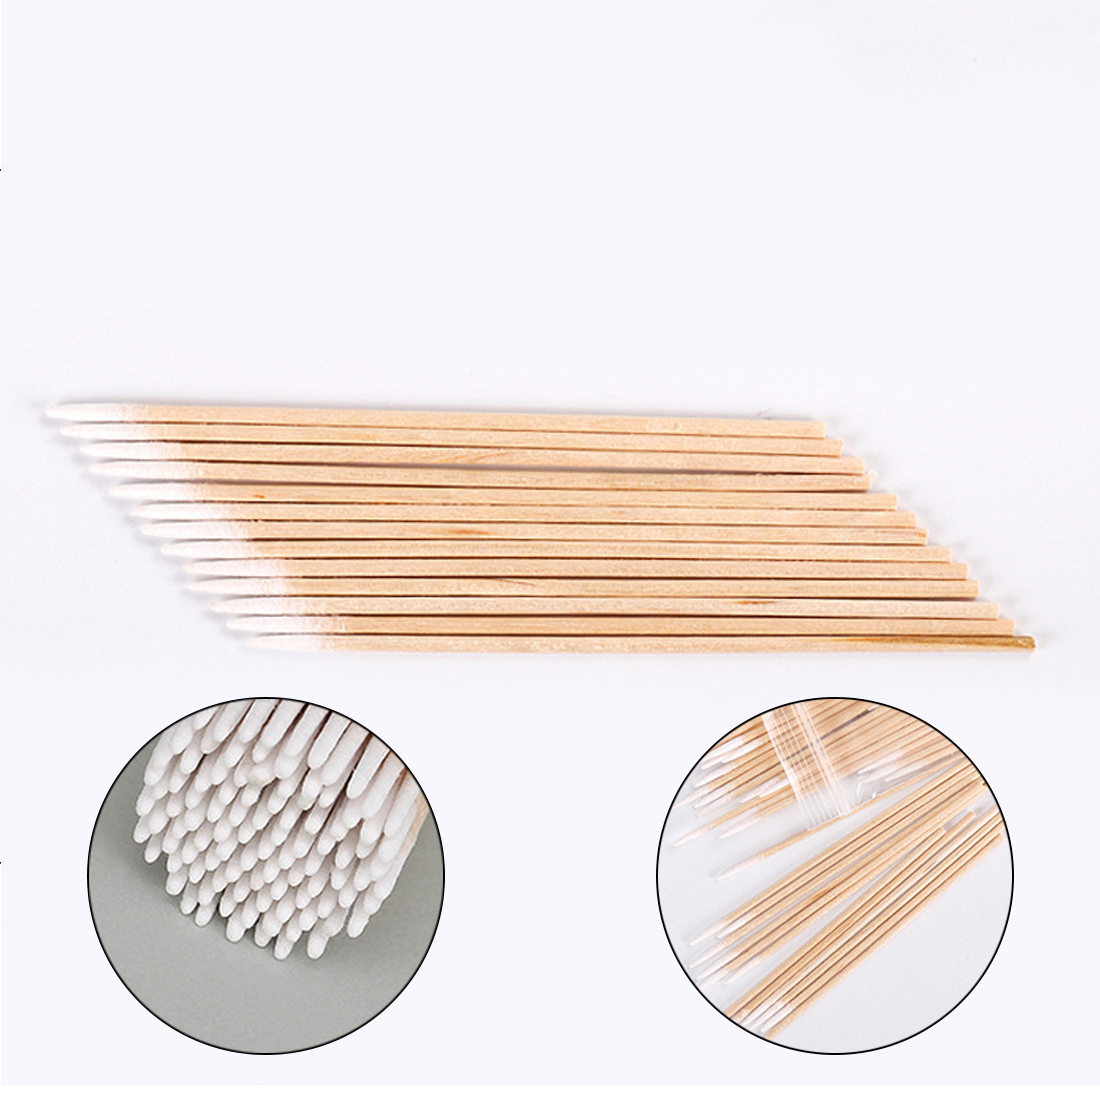 Top 100pcs 7cm Wood Cotton Swab Cosmetics Permanent Makeup Health Medical Ear Jewelry Clean Sticks Buds Tip